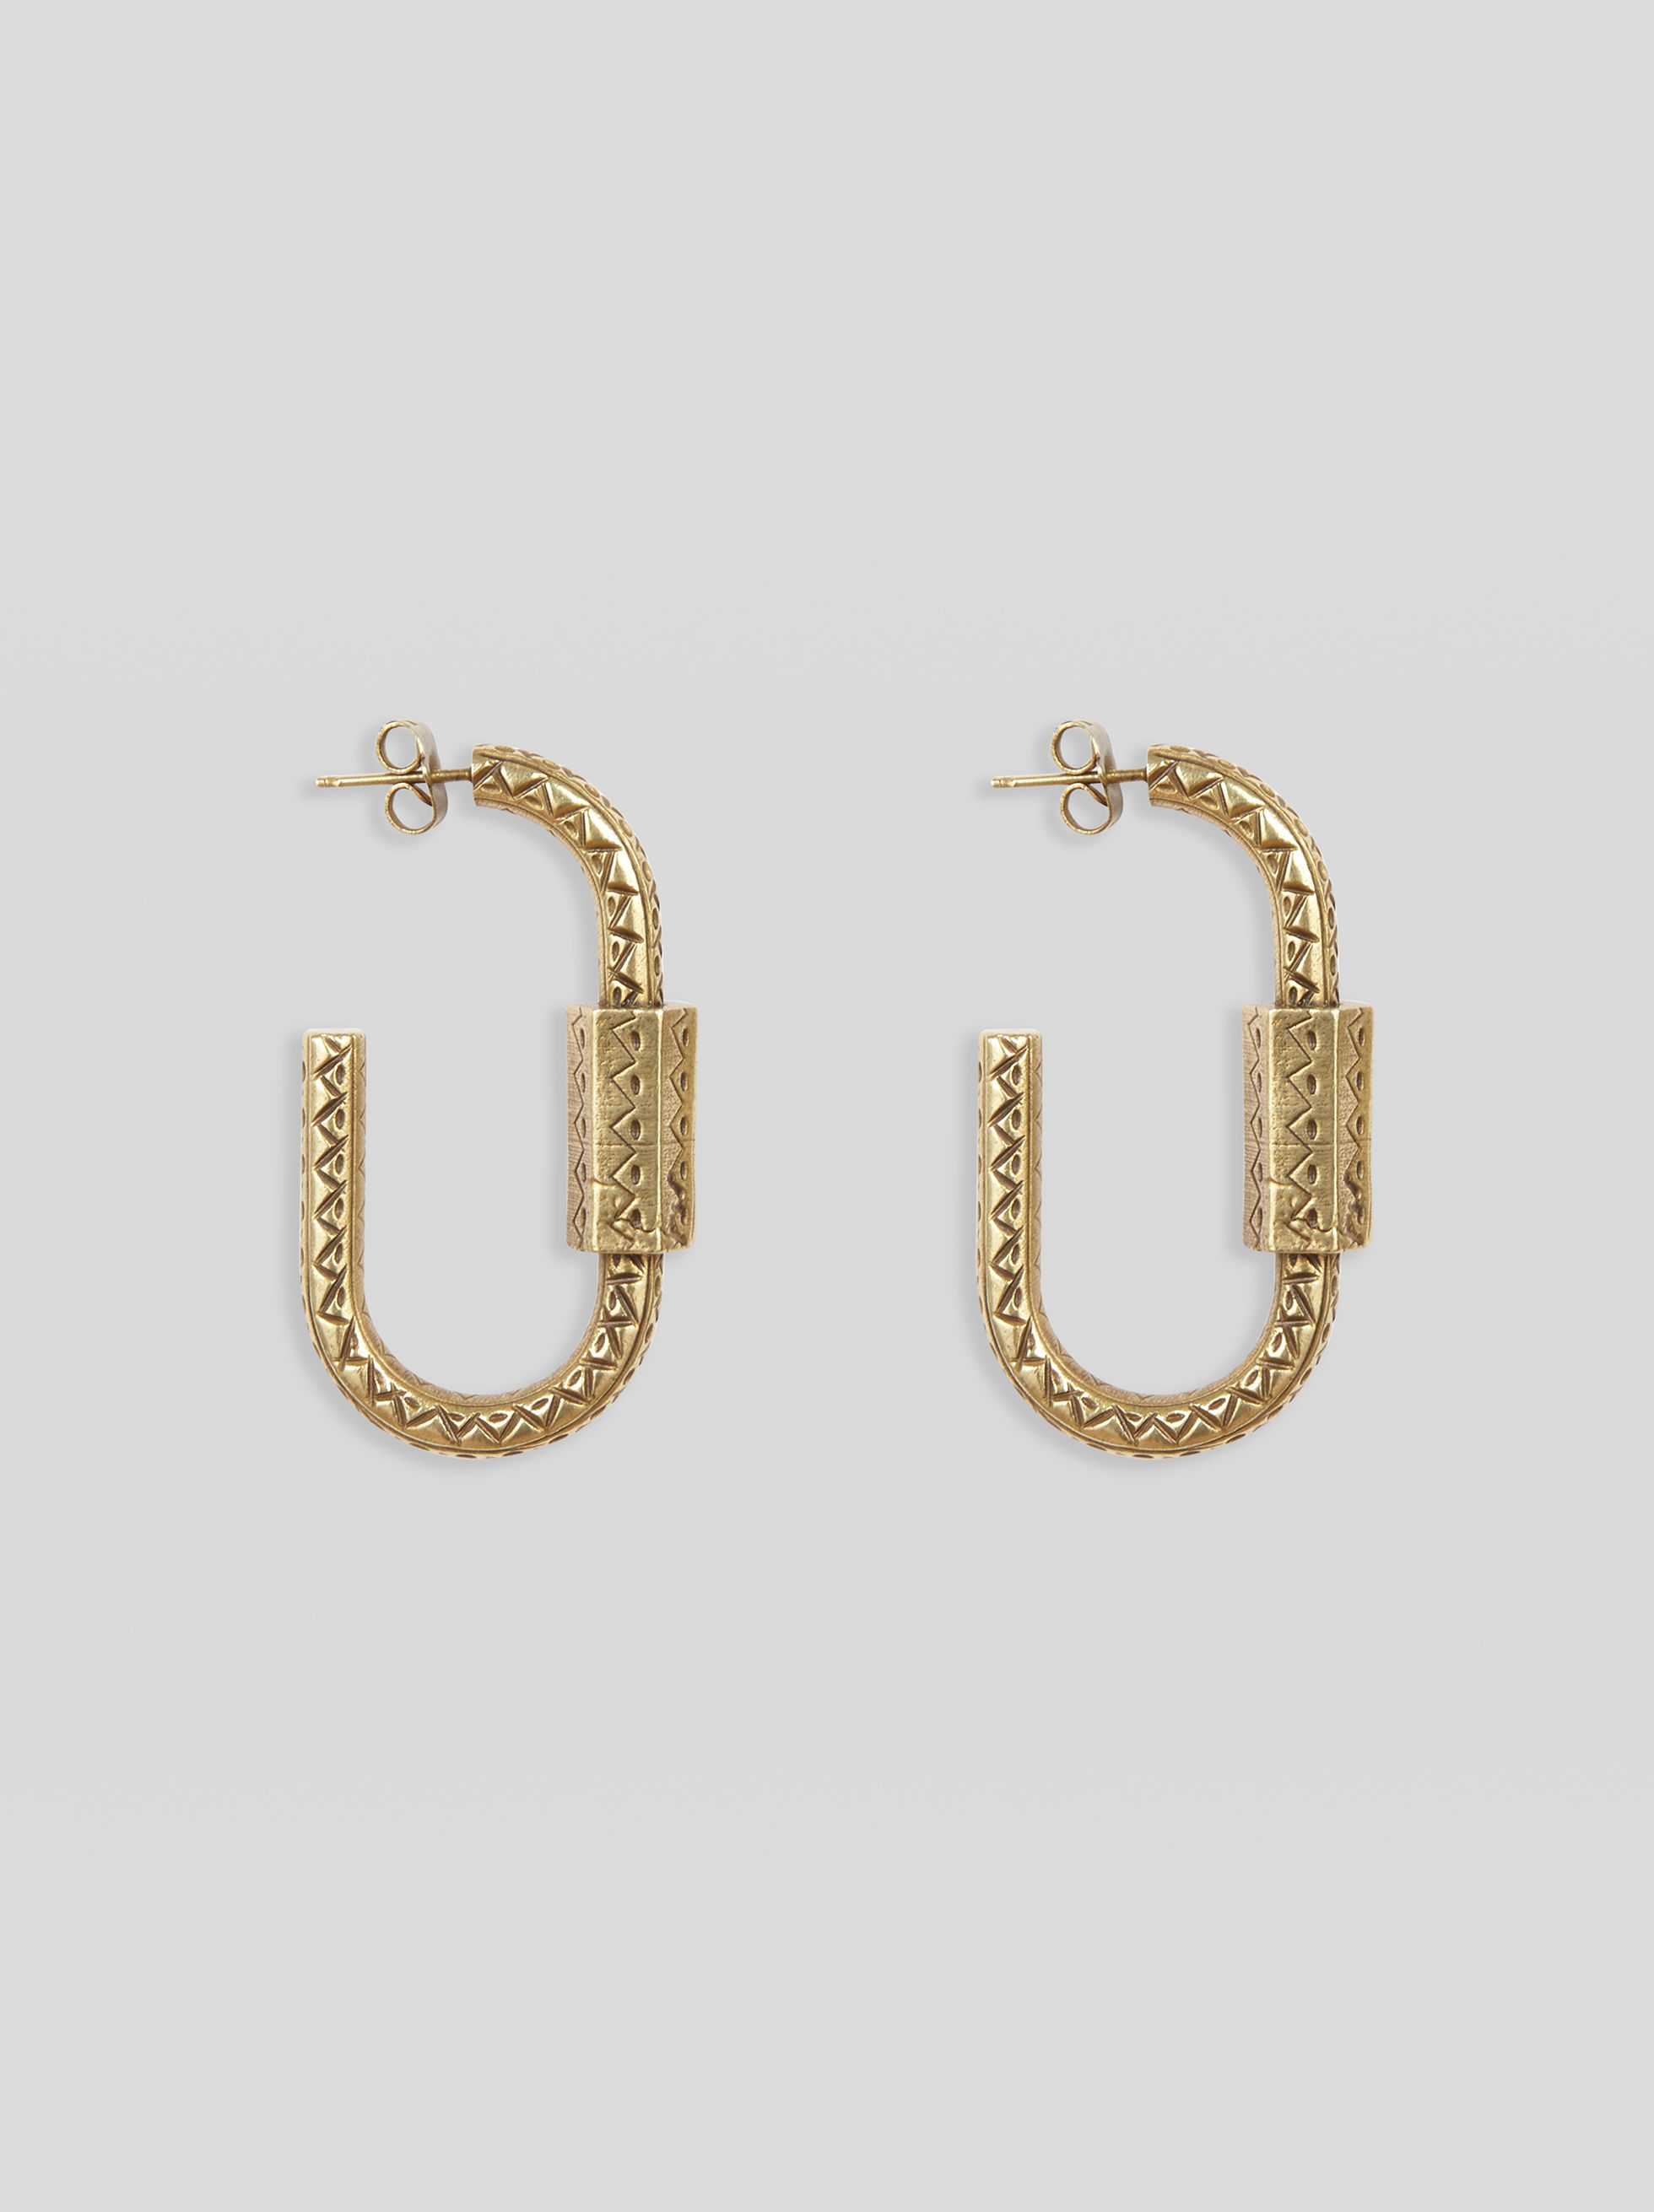 SNAP-HOOK EARRINGS